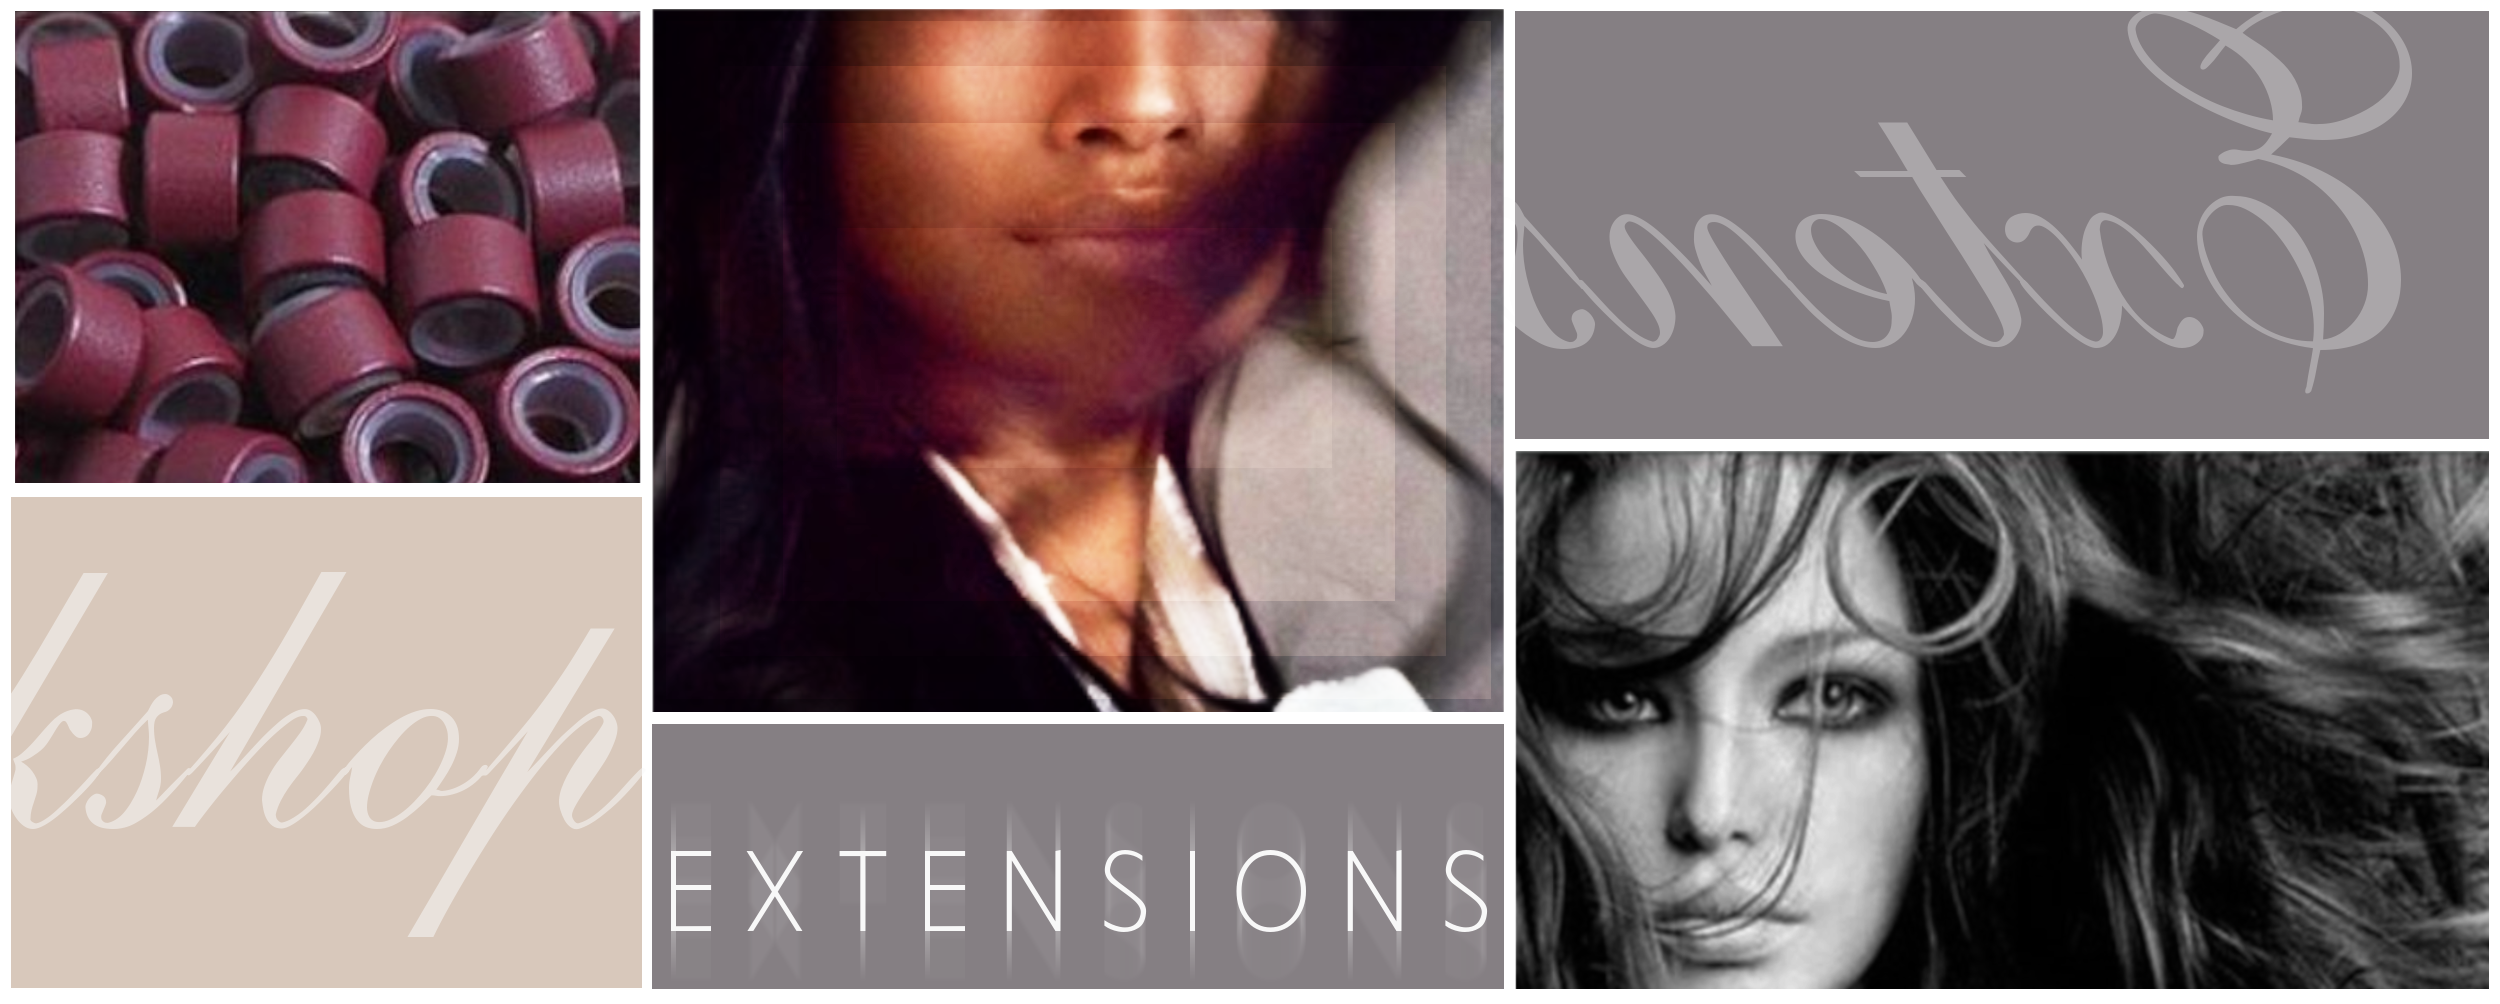 New York hair extensions classes are offered here at Luxury hair plus at our private studio in NYC.